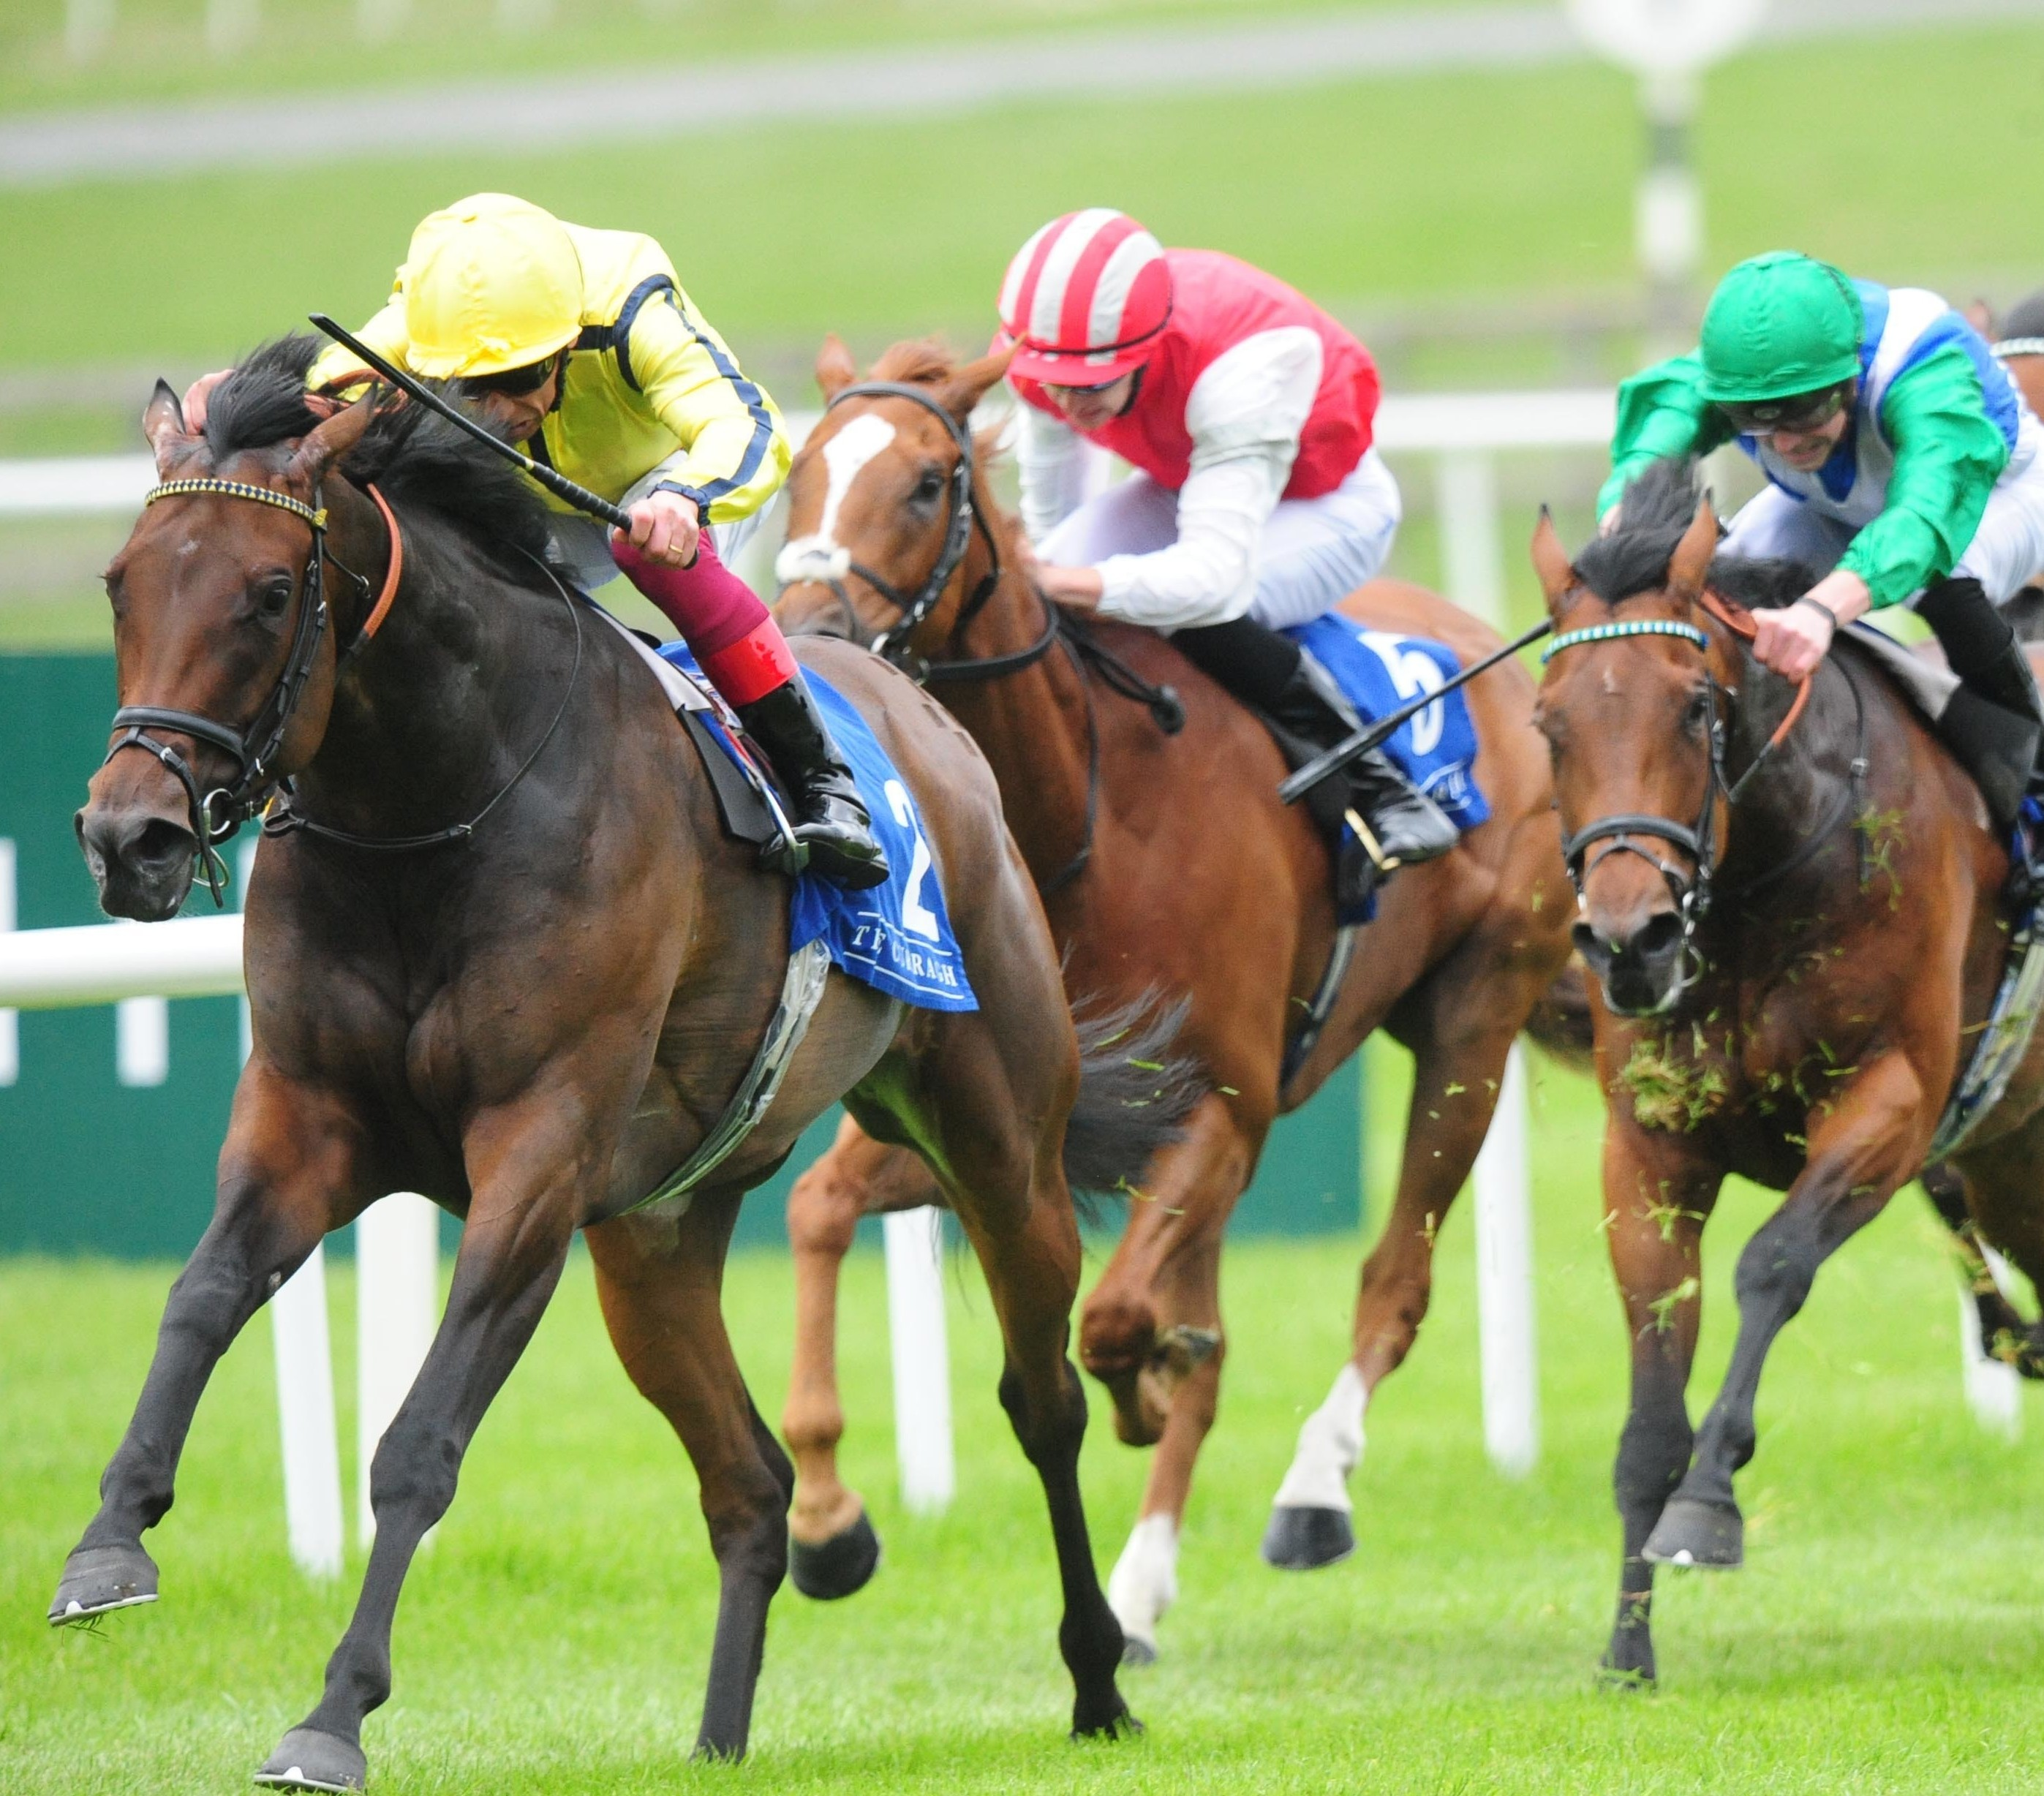 LANWADES STUD STAKES (GR2) - Beshaayir console Dettori